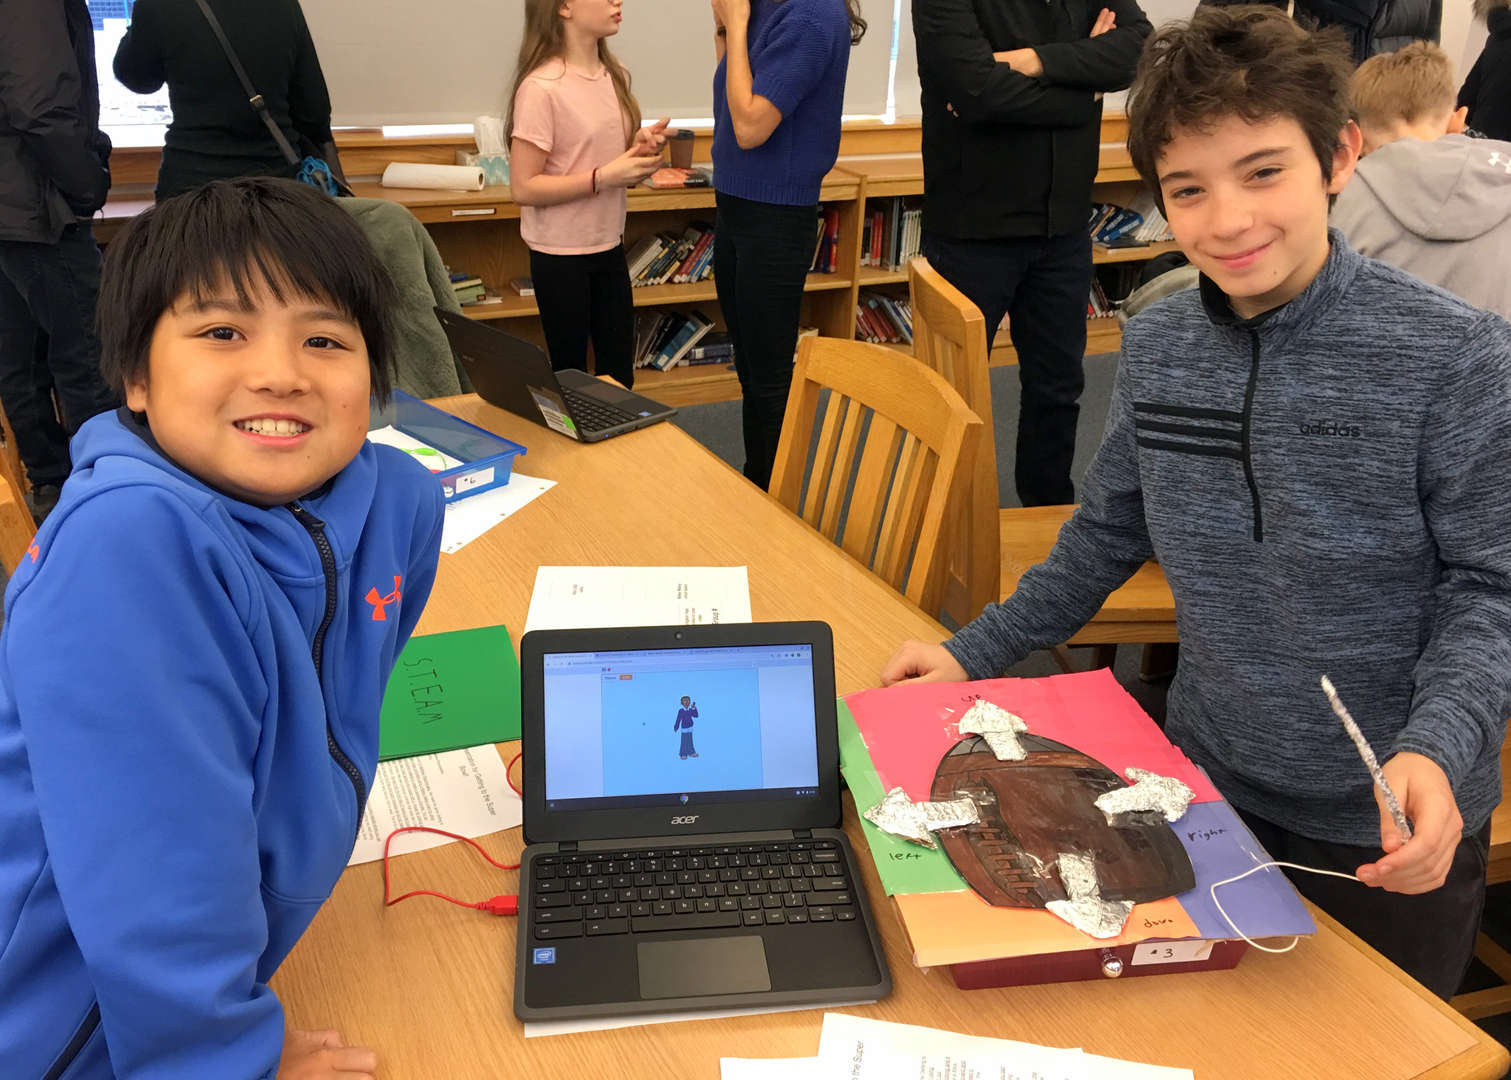 Children displaying their projects at ESMS STEAM Open House, Feb 10 2020